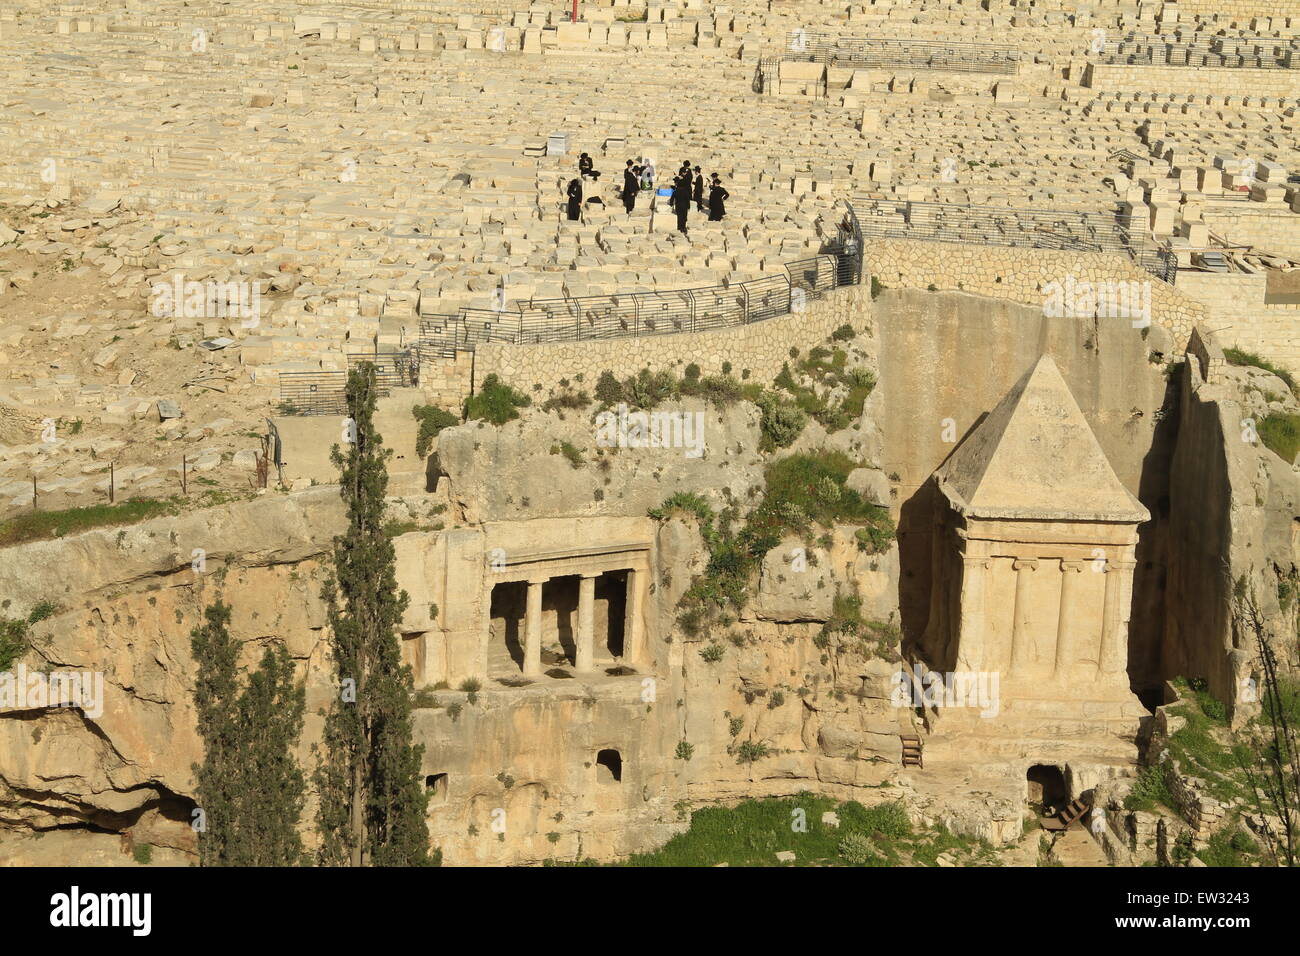 Israel, Jerusalem, Kidron valley, the tombs of Zecharia (right) and Bene Hazir (left) are carved at the foot of - Stock Image